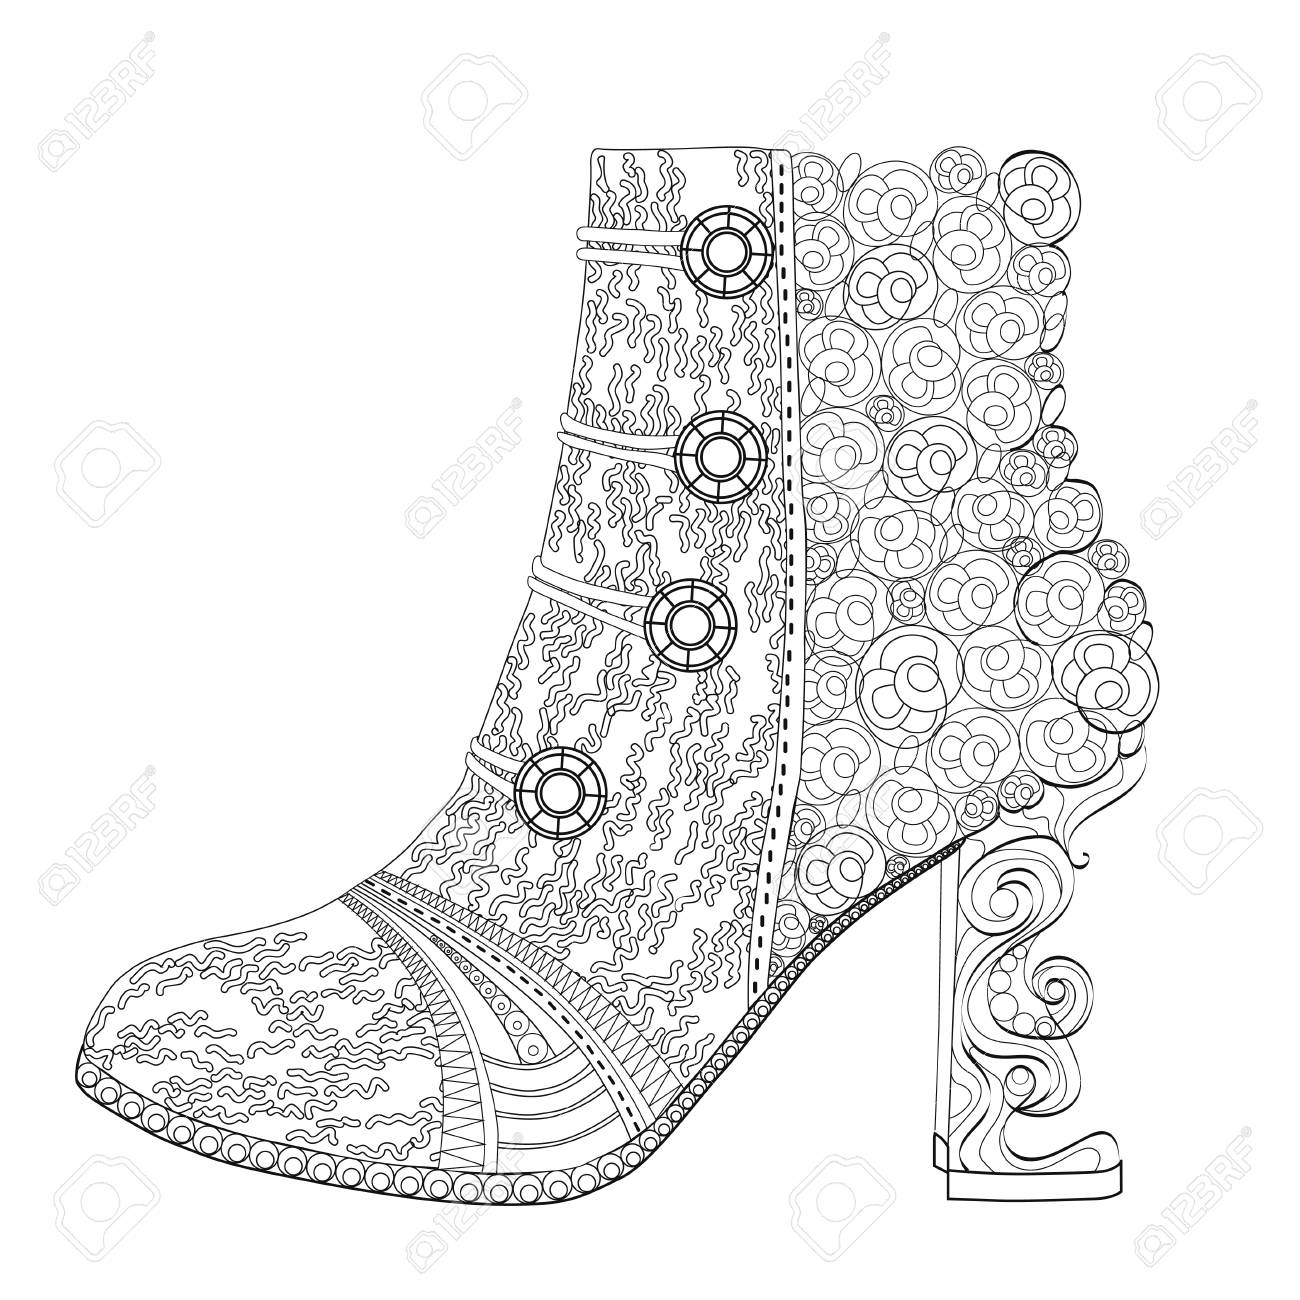 Shoe Coloring Page For Adults Royalty Free Cliparts Vectors And